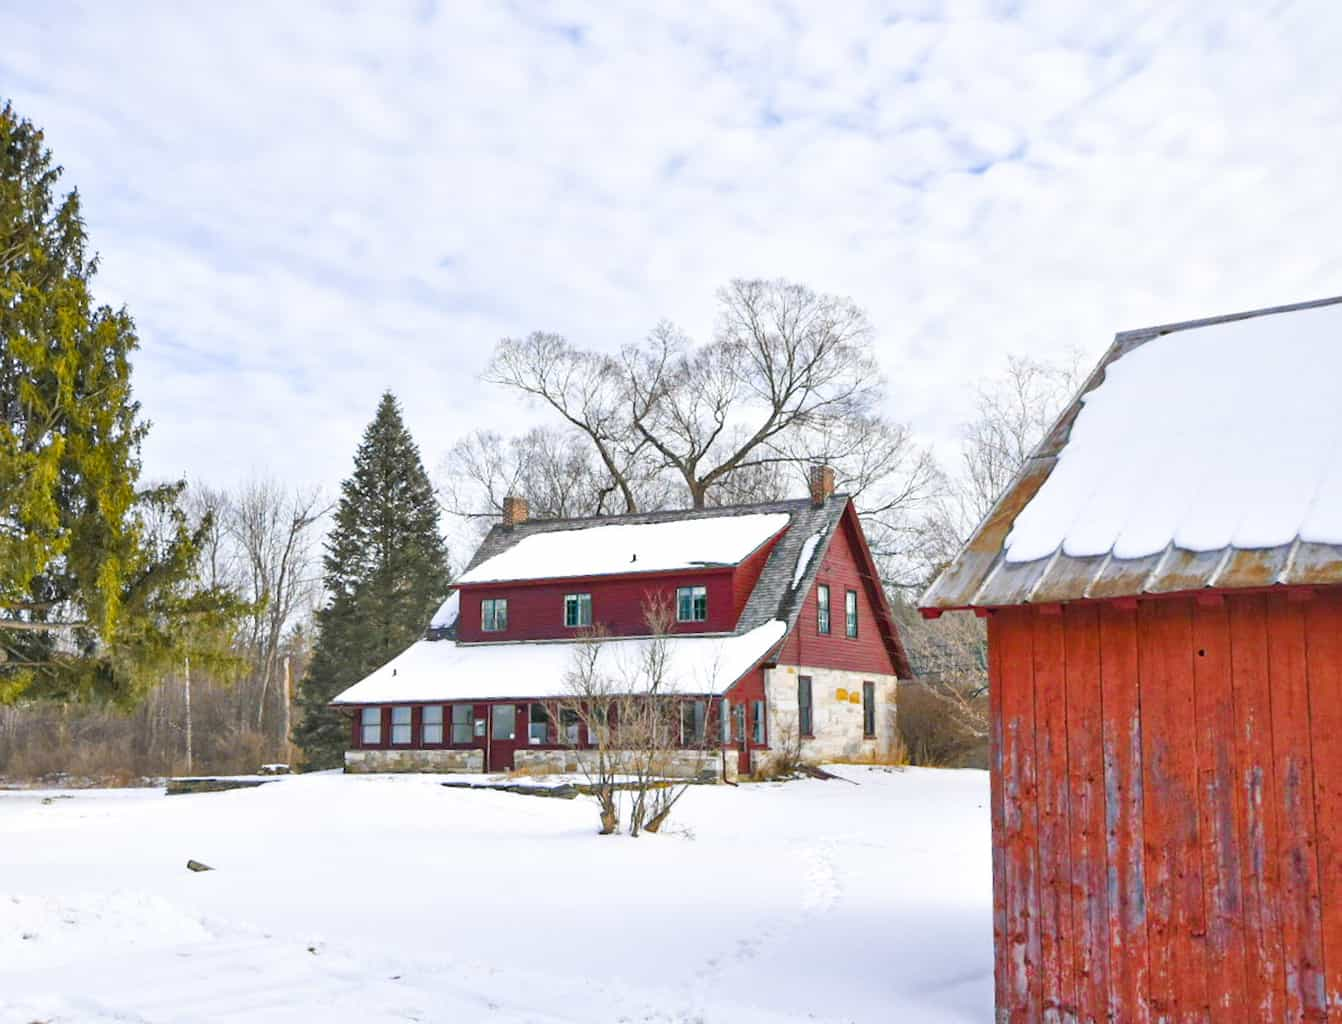 A winter view of the Robert Frost House in Shaftsbury, Vermont